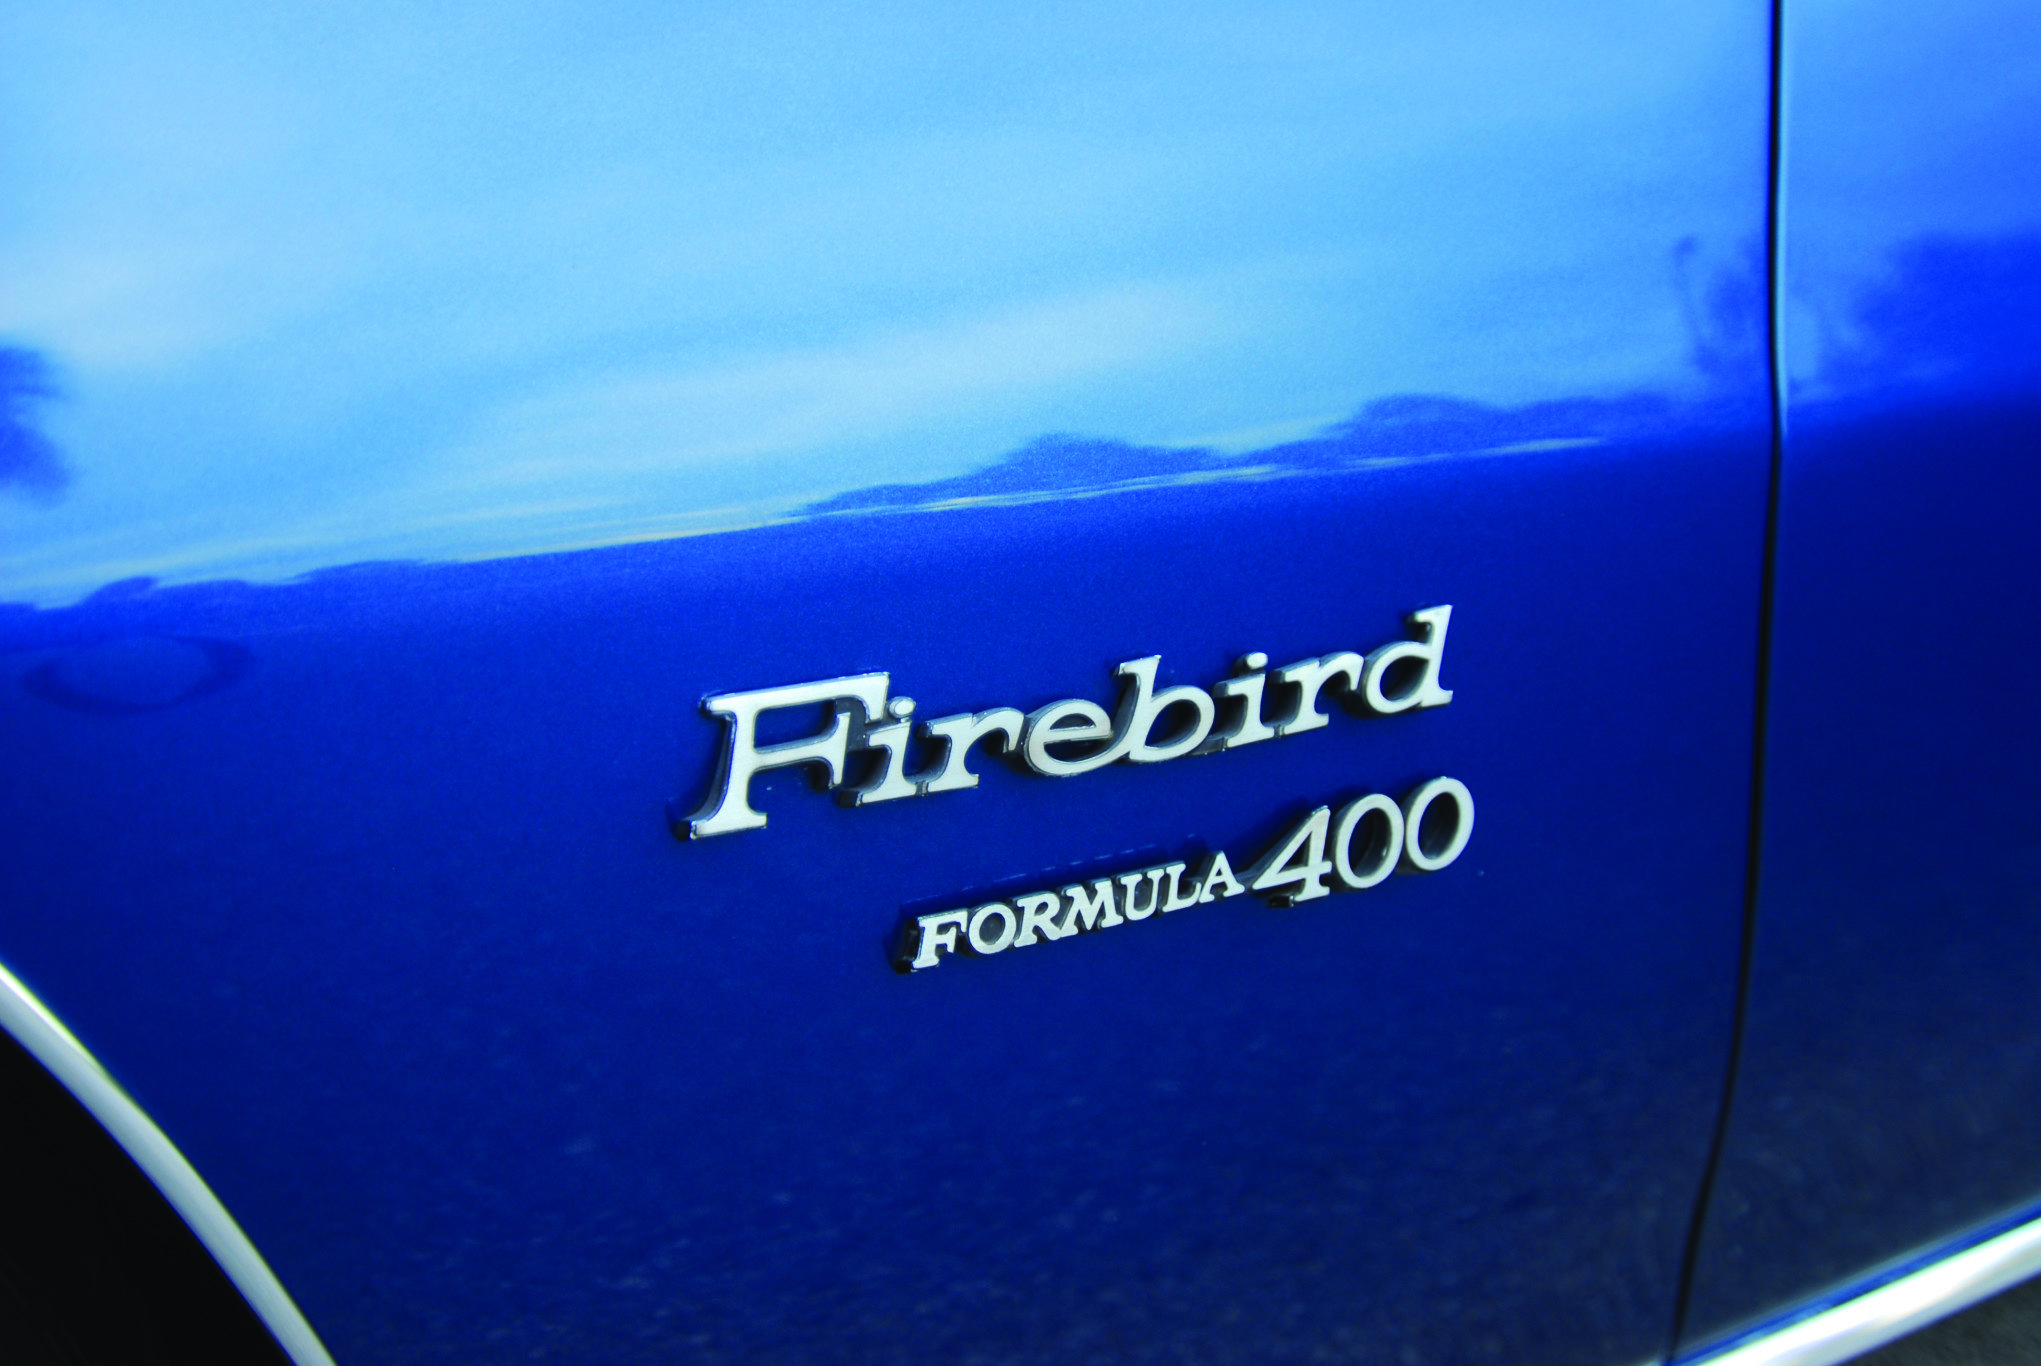 1970 Pontiac Firebird Formula 400 Fender Badge